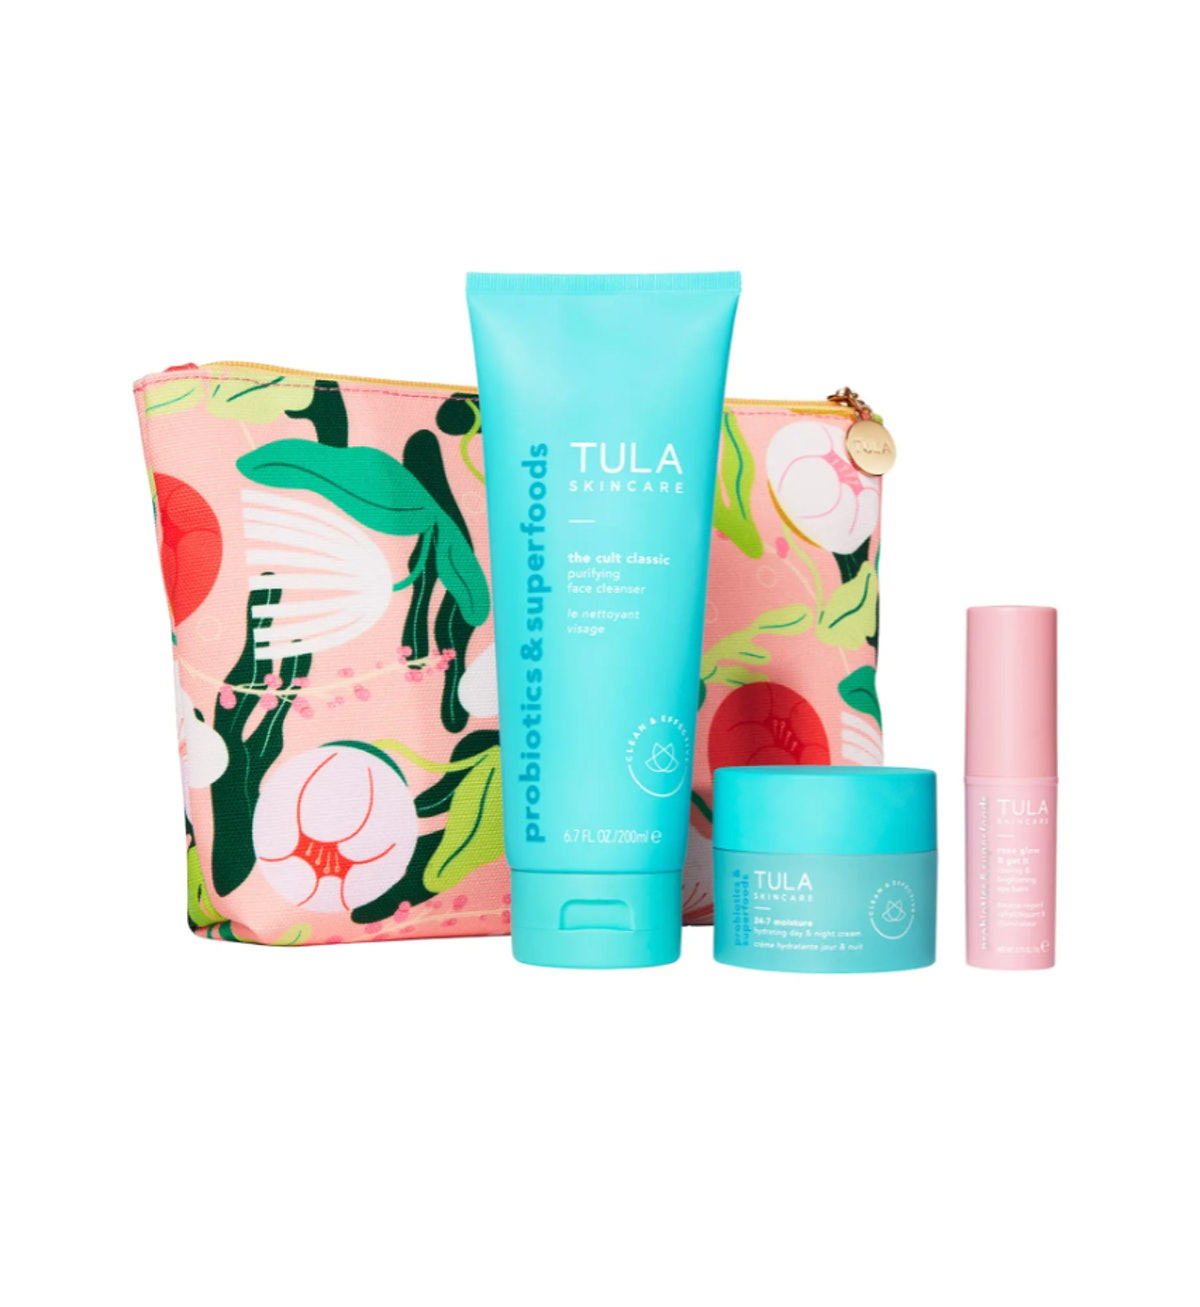 Tula Skincare The Cult Classic Cleanser Set